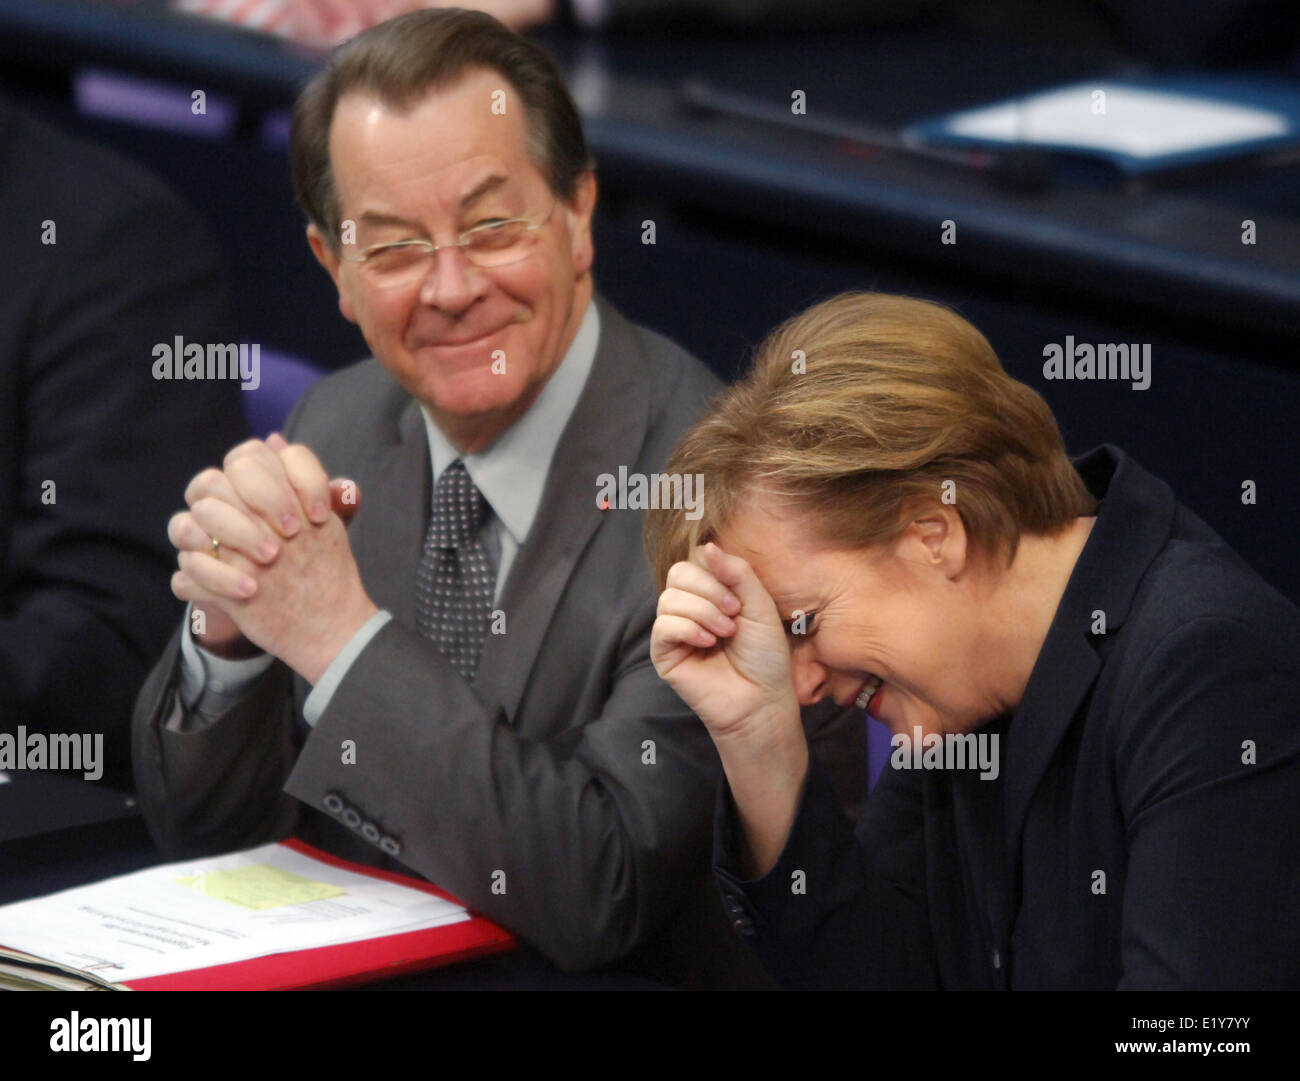 Chancellor Angela Merkel (CDU) and vice chancellor Franz Müntefering (SPD) laugh together (01.12.2005) in the - Stock Image